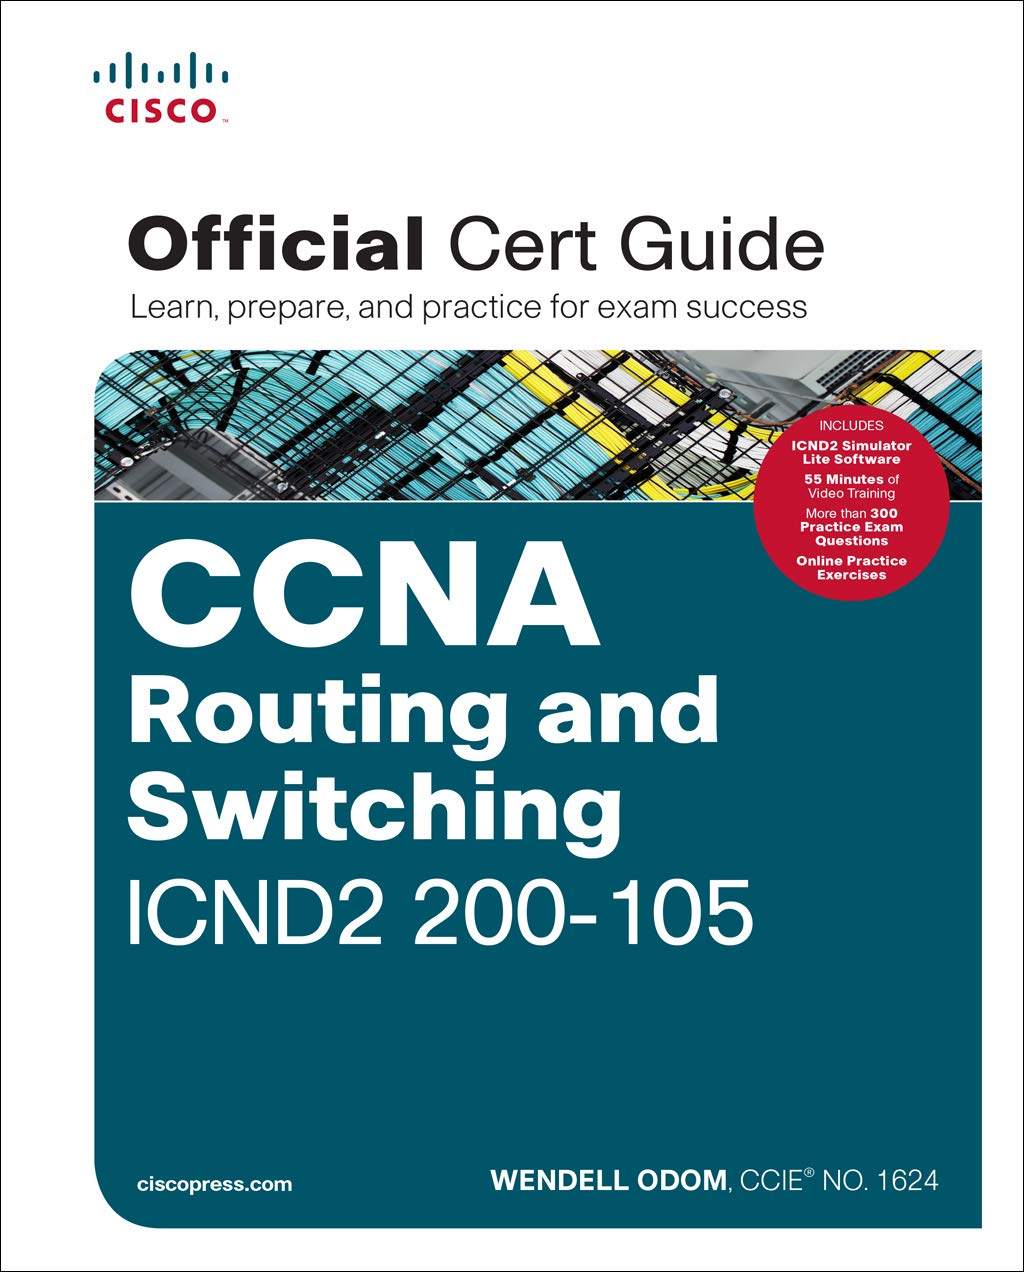 CCNA Routing and Switching ICND2 200-105 Official